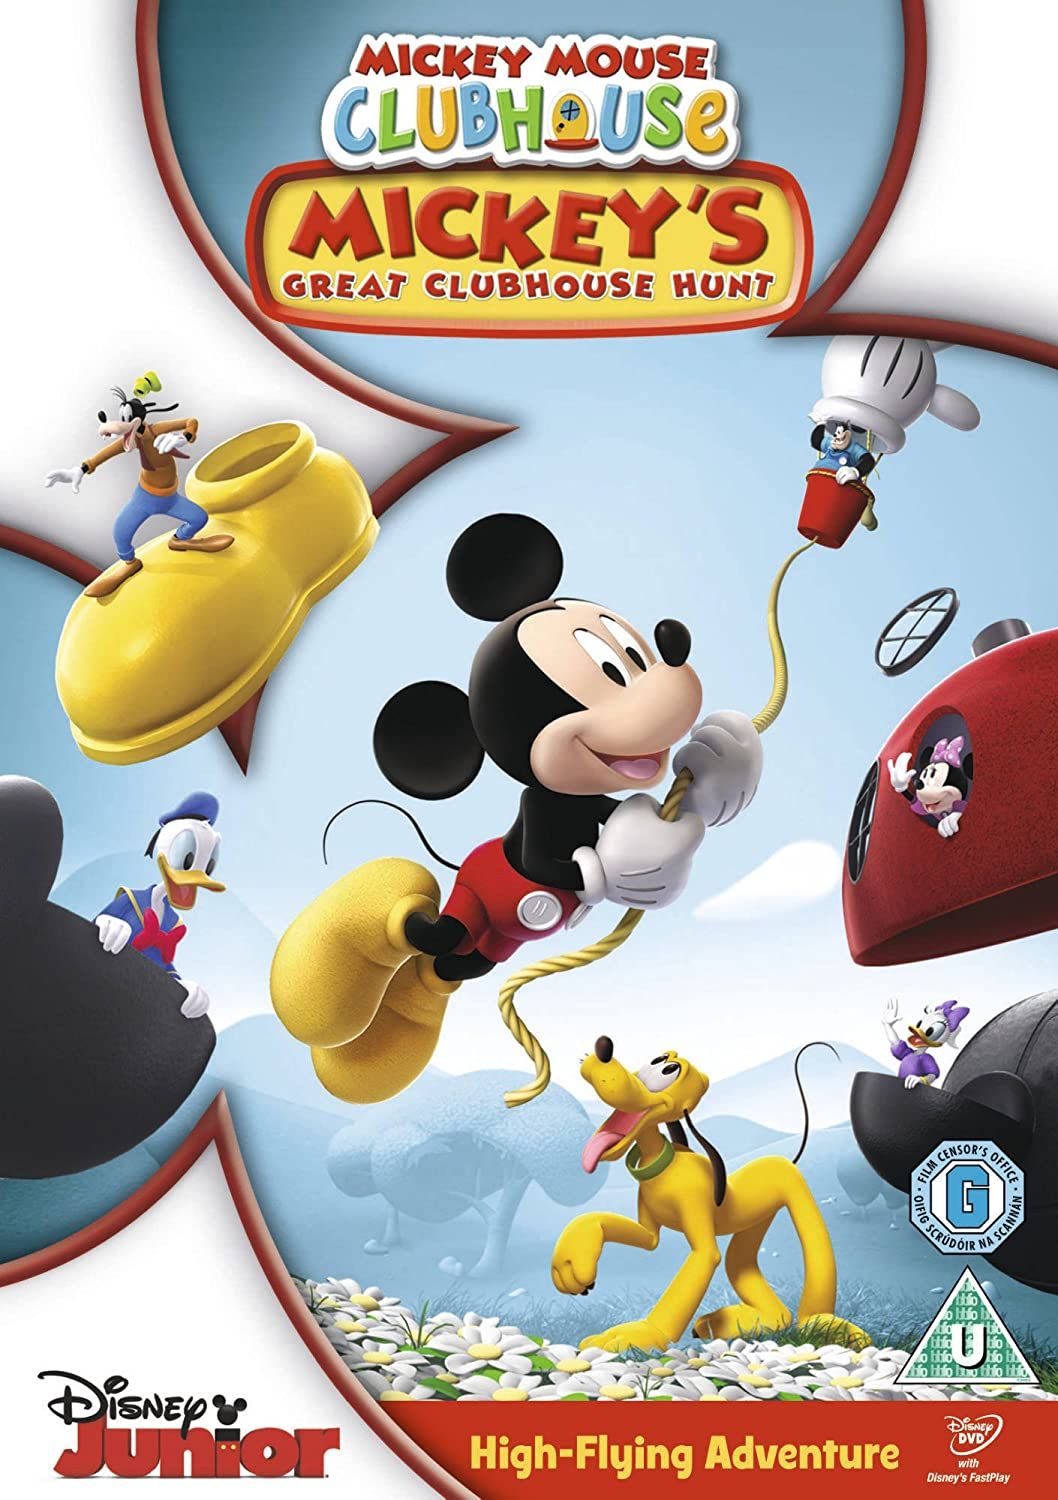 Mouse Clubhouse Mickey's